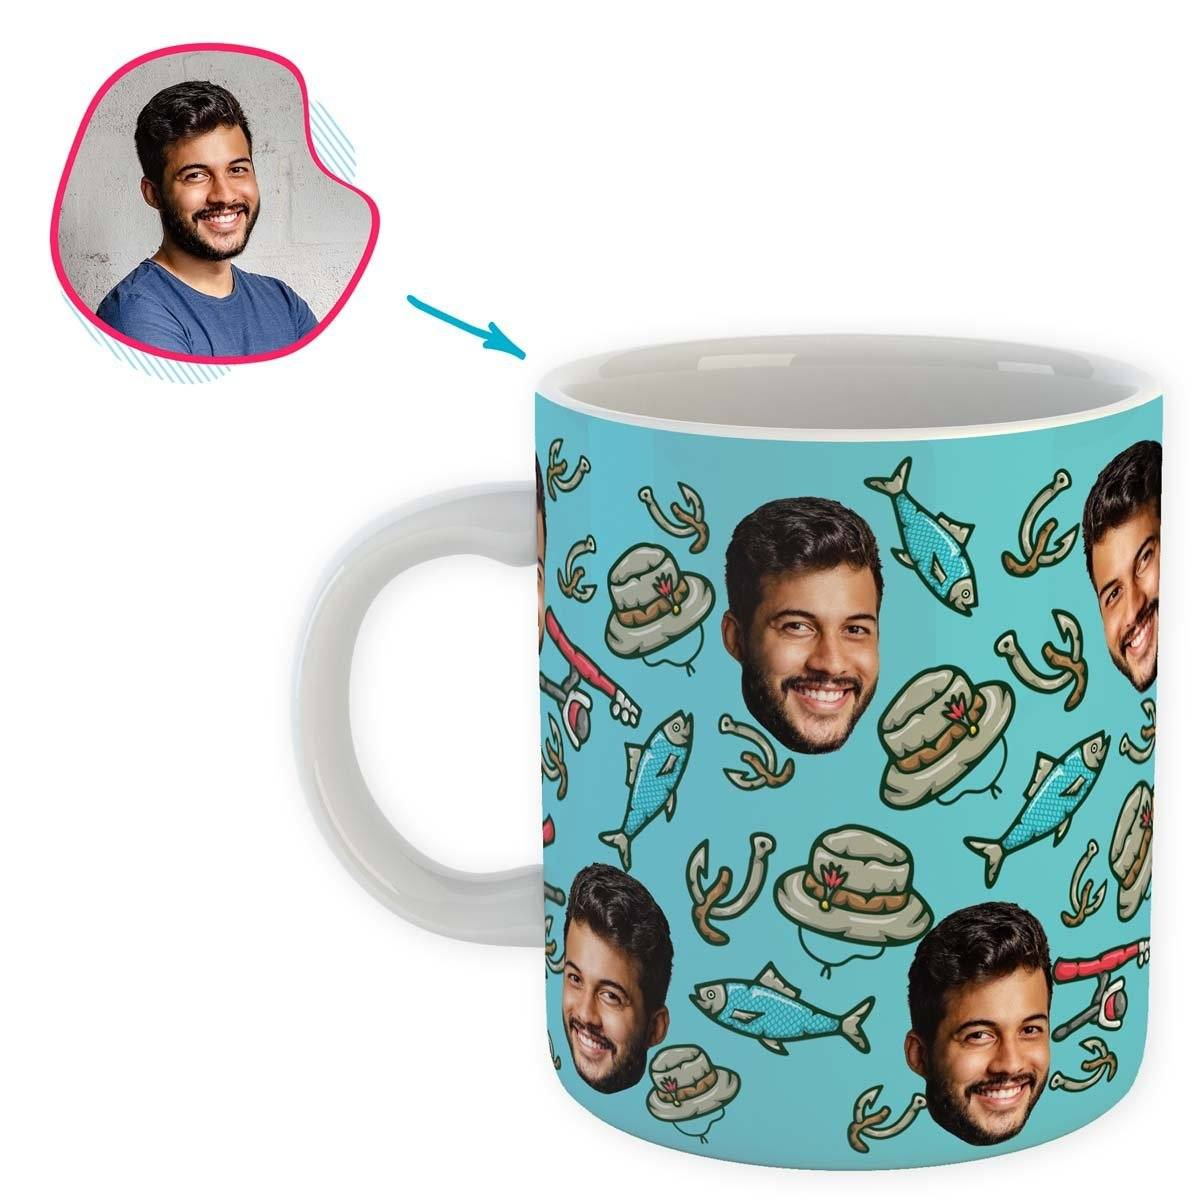 Blue Fishing personalized mug with photo of face printed on it